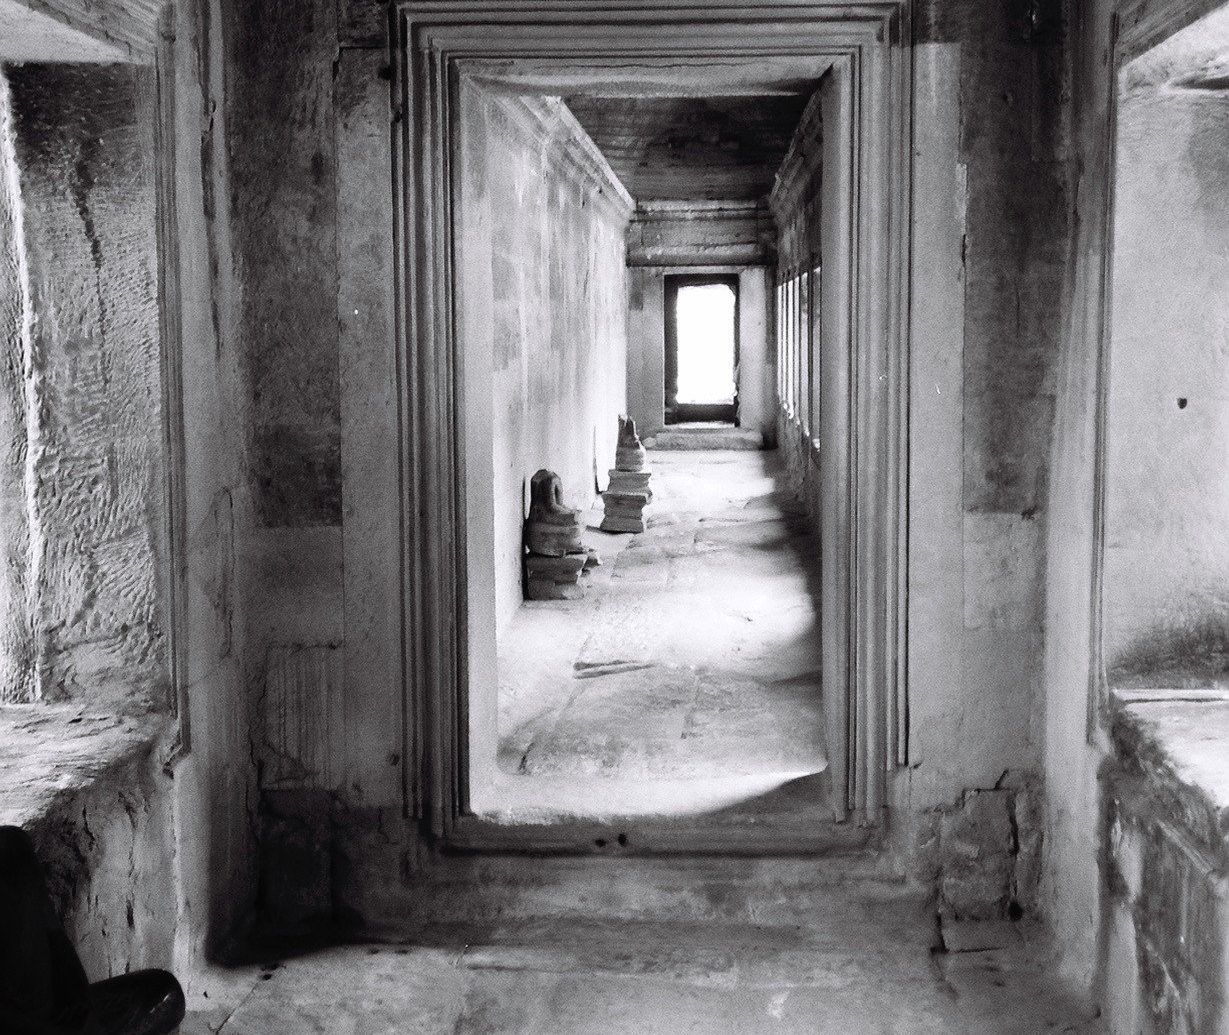 Offbeat indoor white black photograph black and white image building photography house monochrome monochrome photography darkness ancient history temple old alley floor Ruins door doorway dirty